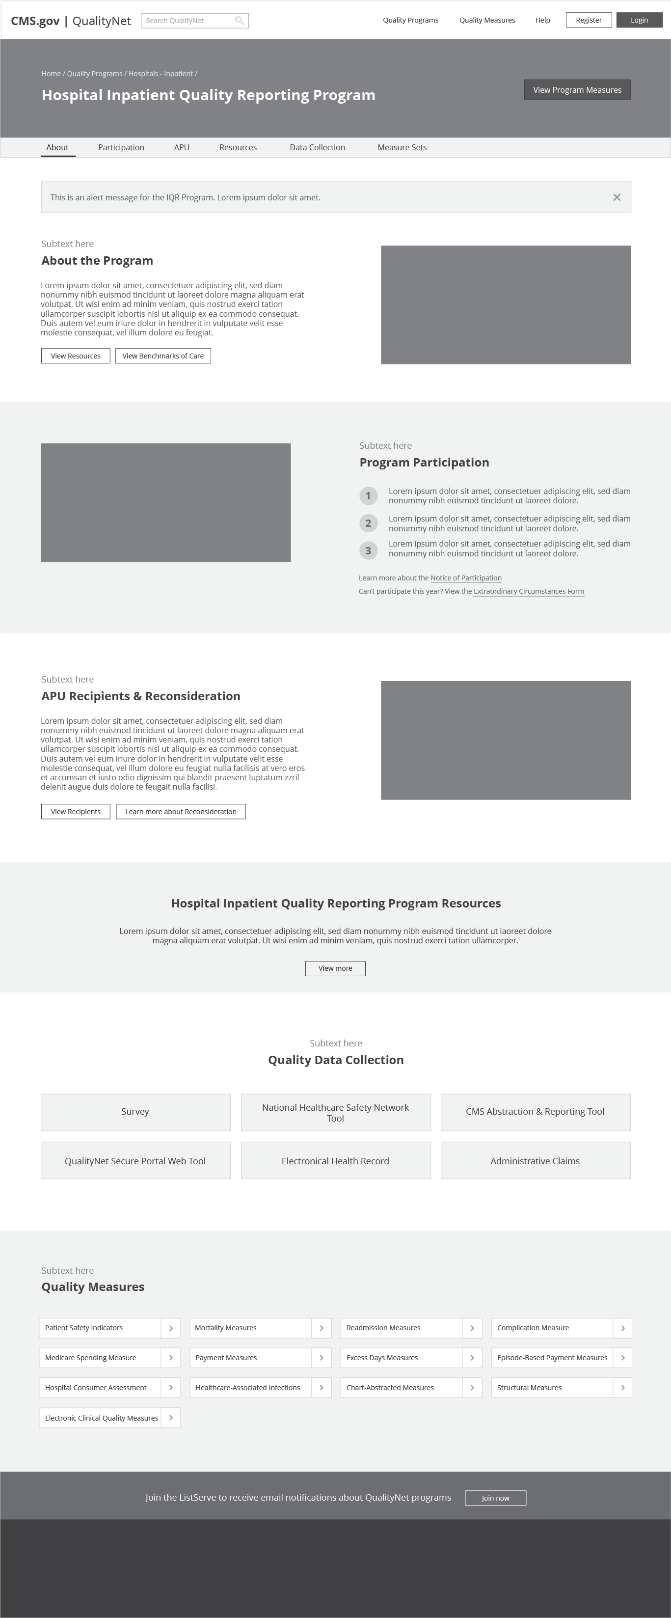 QNP wireframe 2